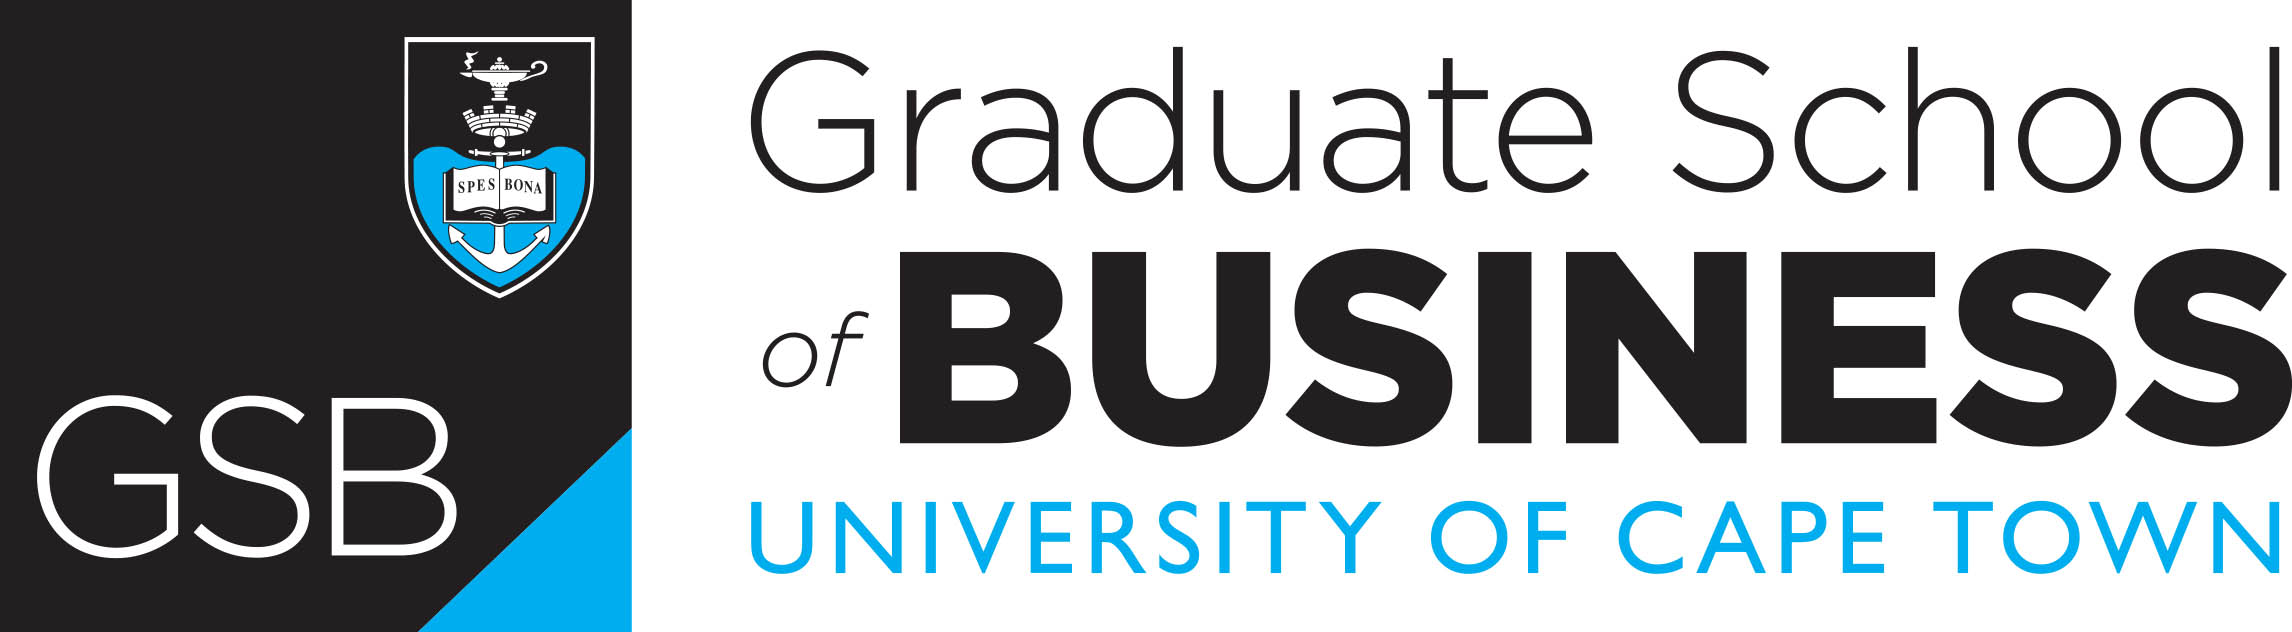 logo Graduate School of Business de University of Cape Town